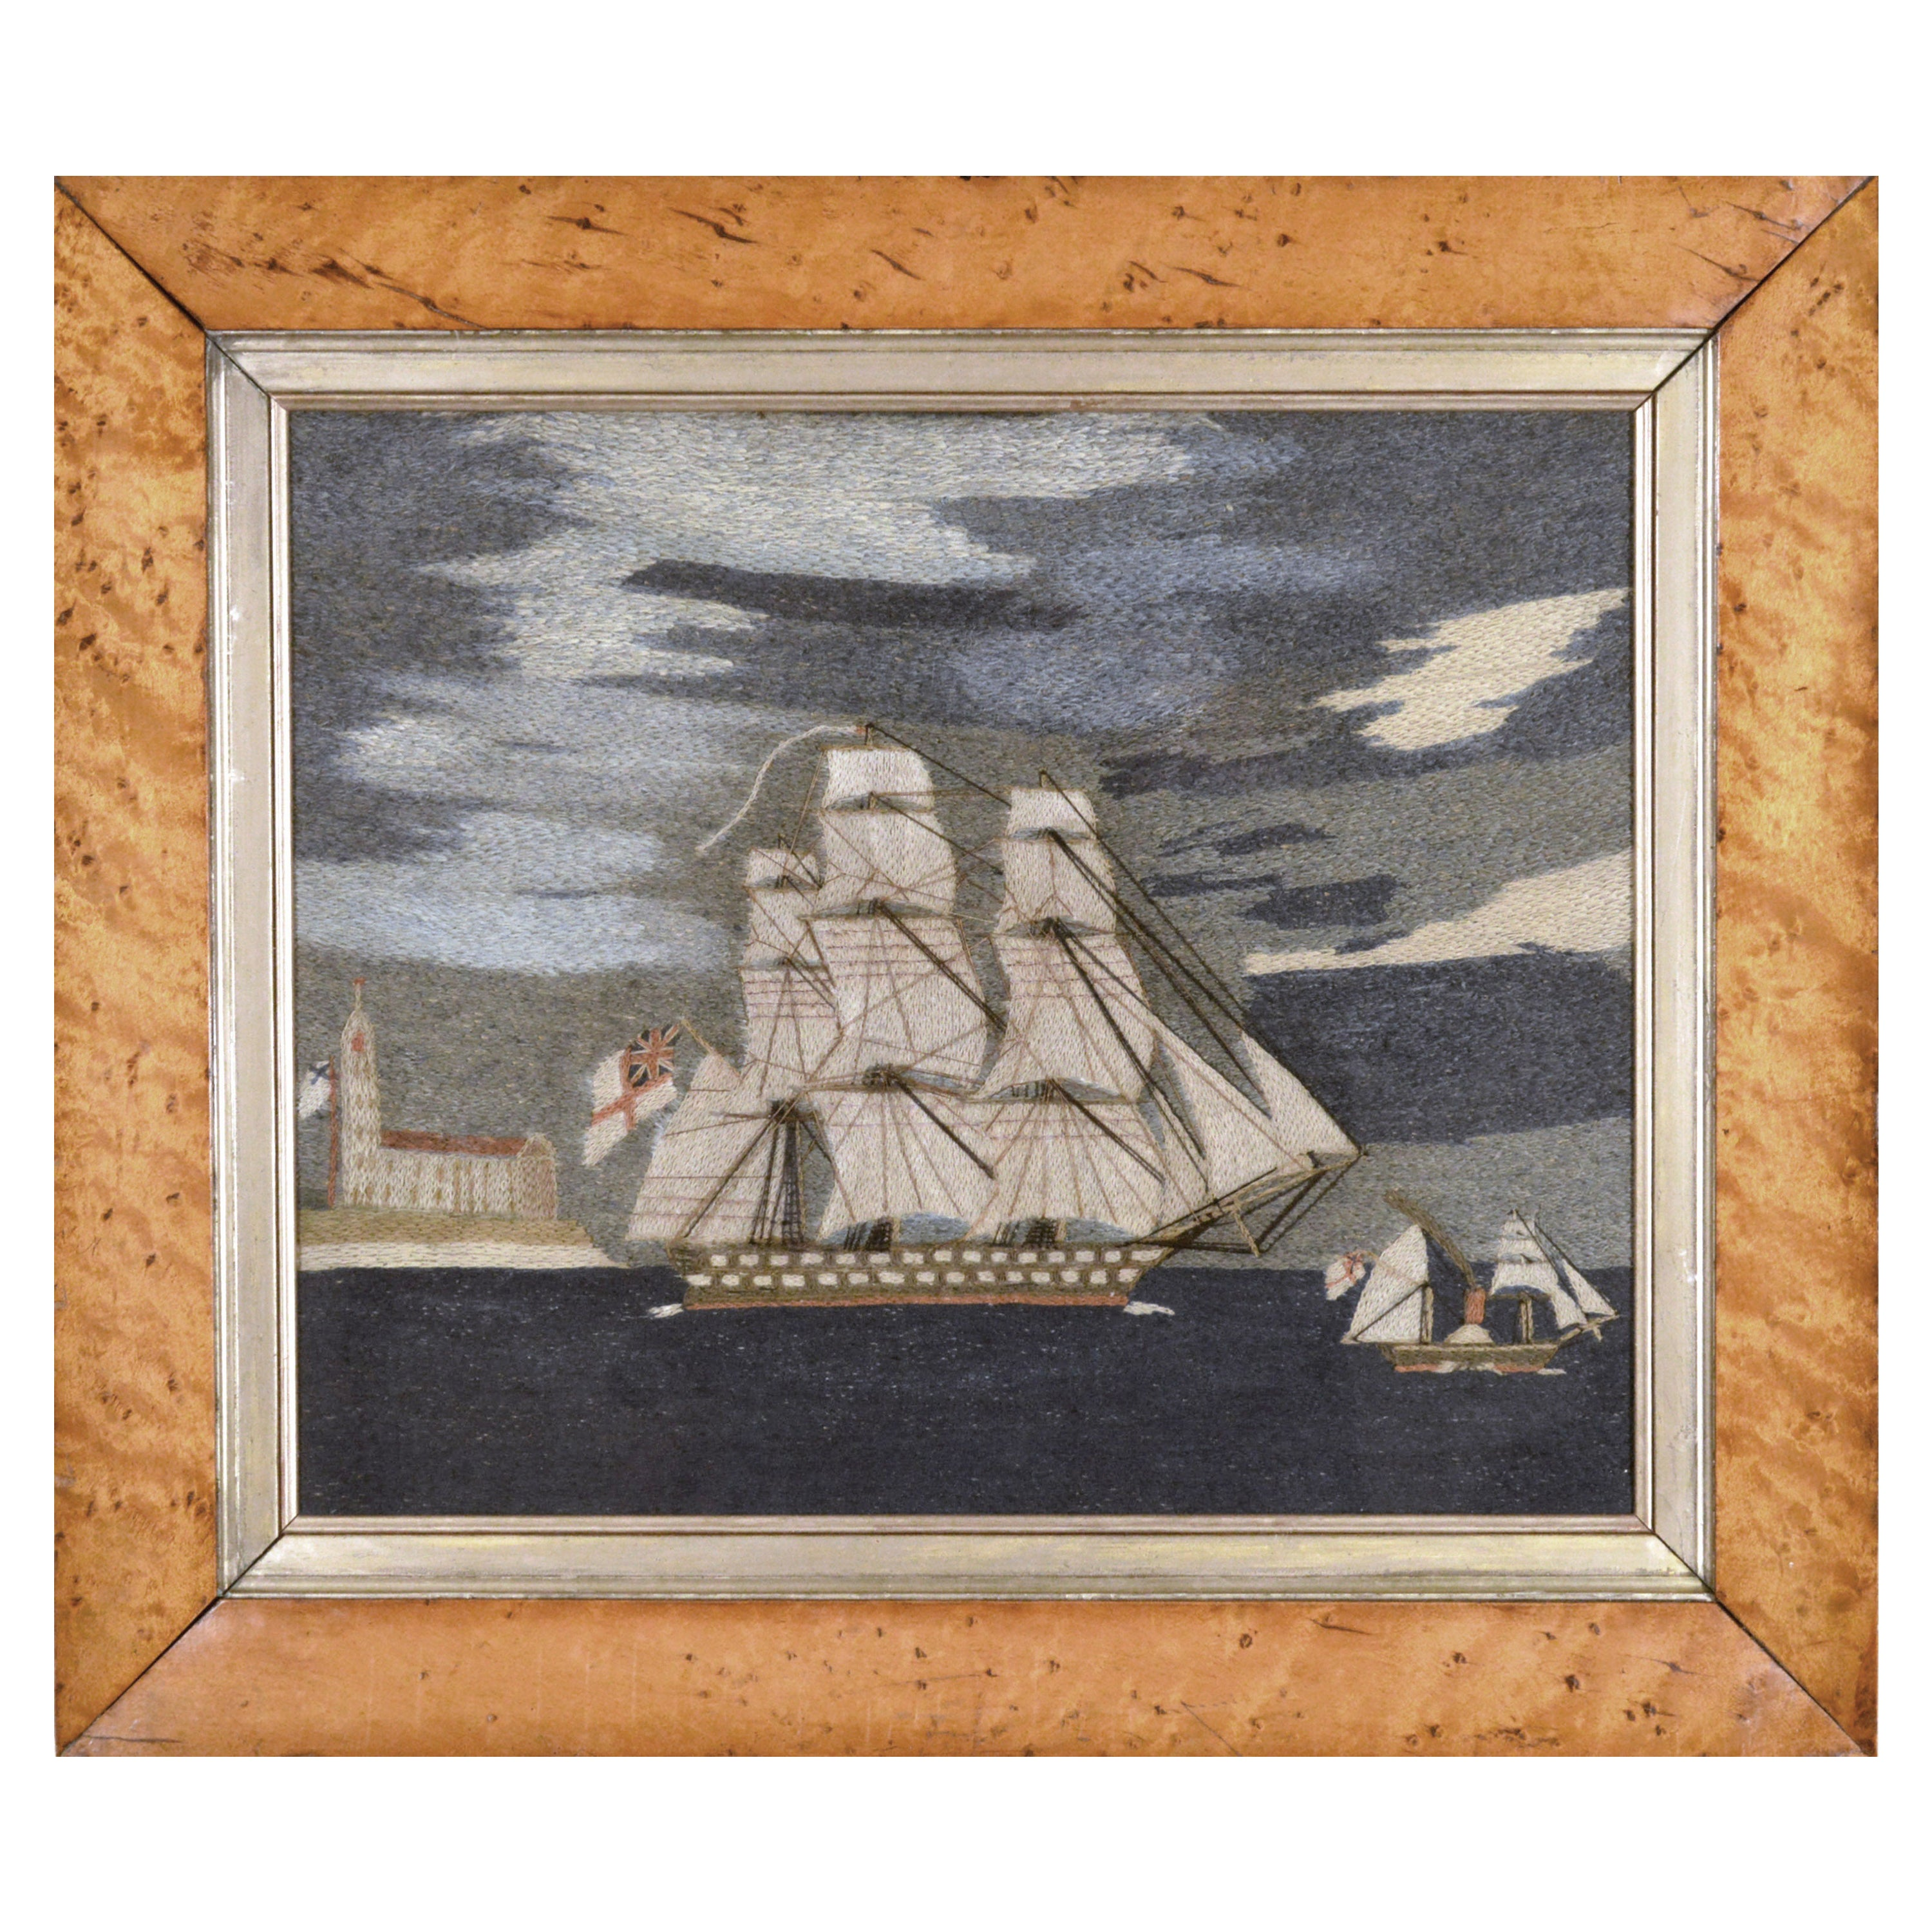 British Sailor's Woolwork or Woolie of Two Royal Navy Ships